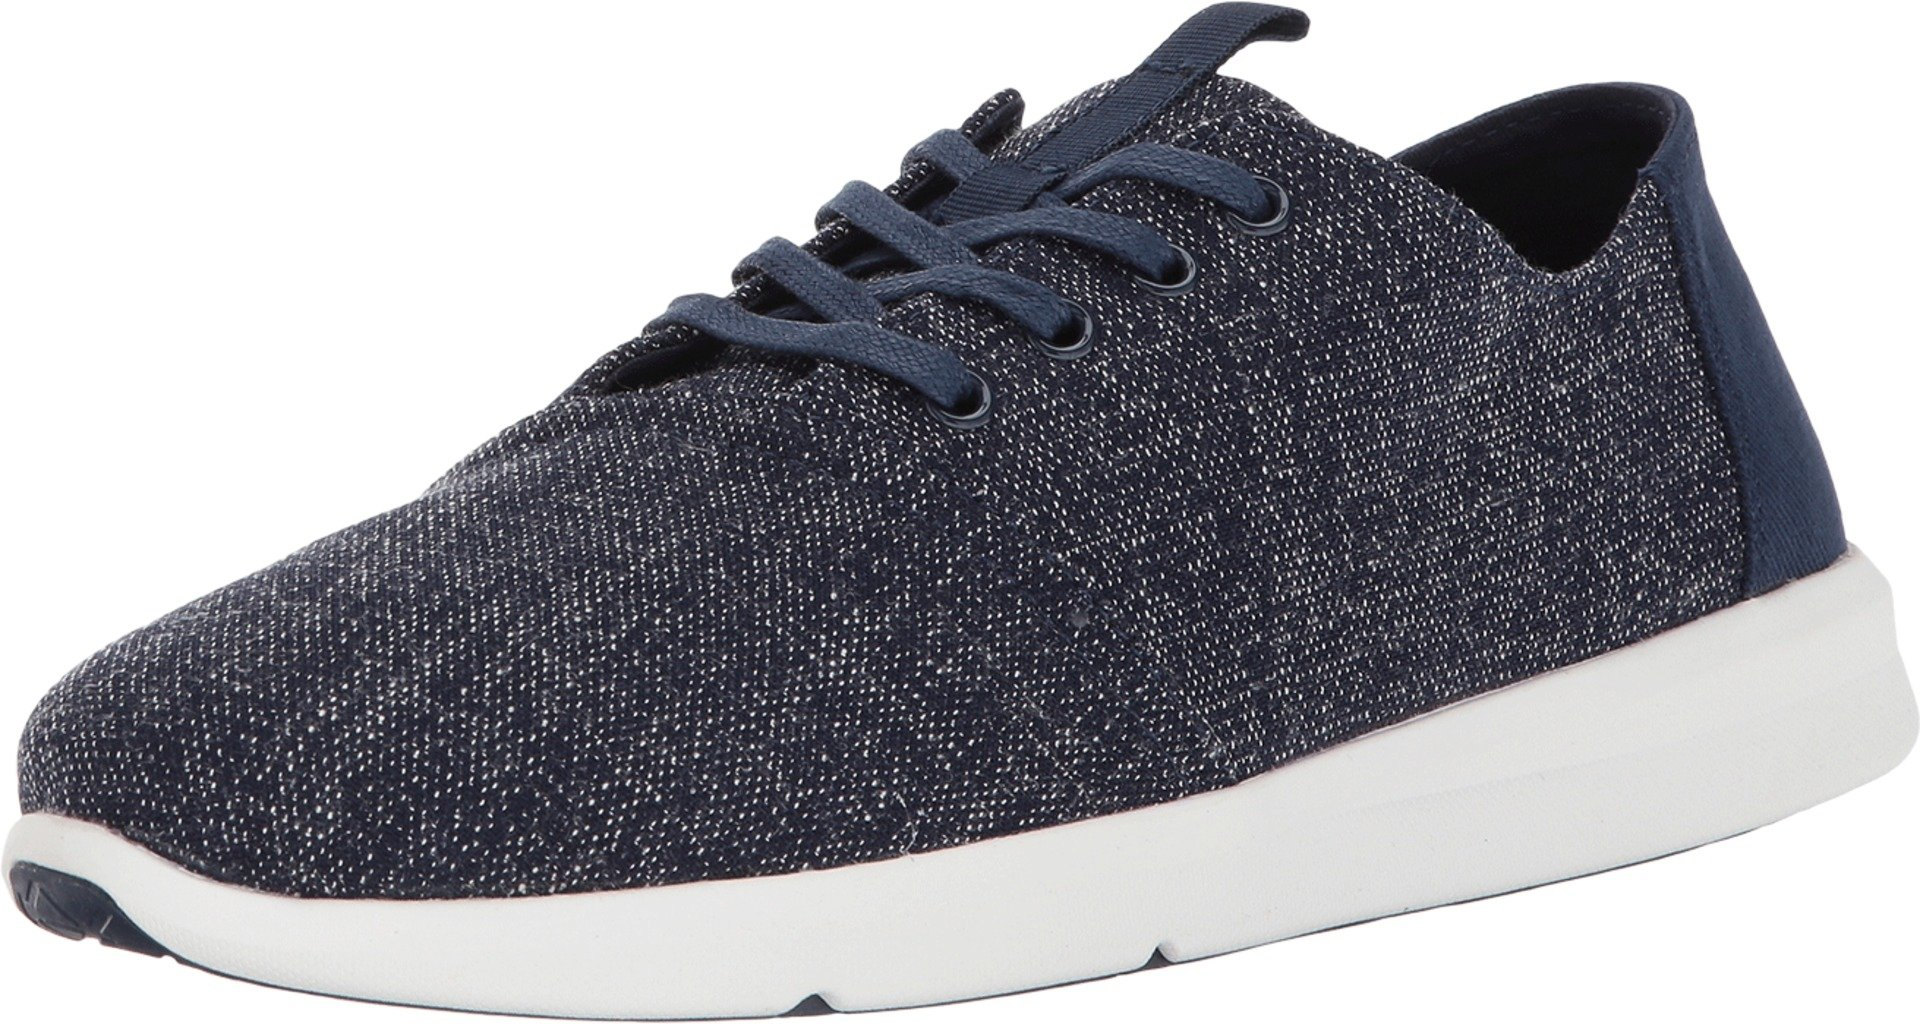 TOMS Men's Del Rey Navy Two-Tone Woven Oxford